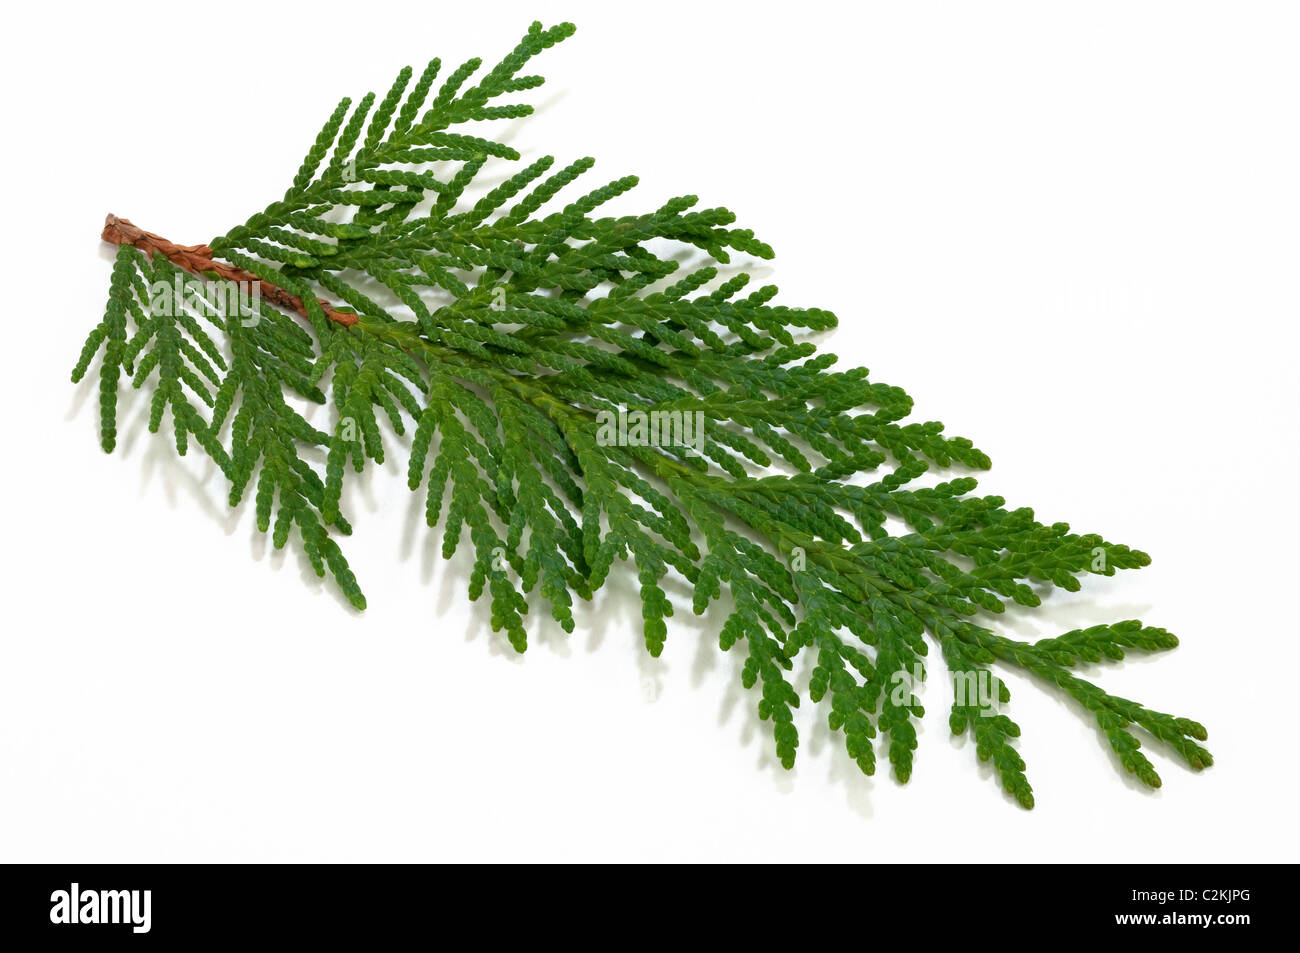 Eastern Arborvitae (Thuja occidentalis), twig. Studio picture against a white background. - Stock Image